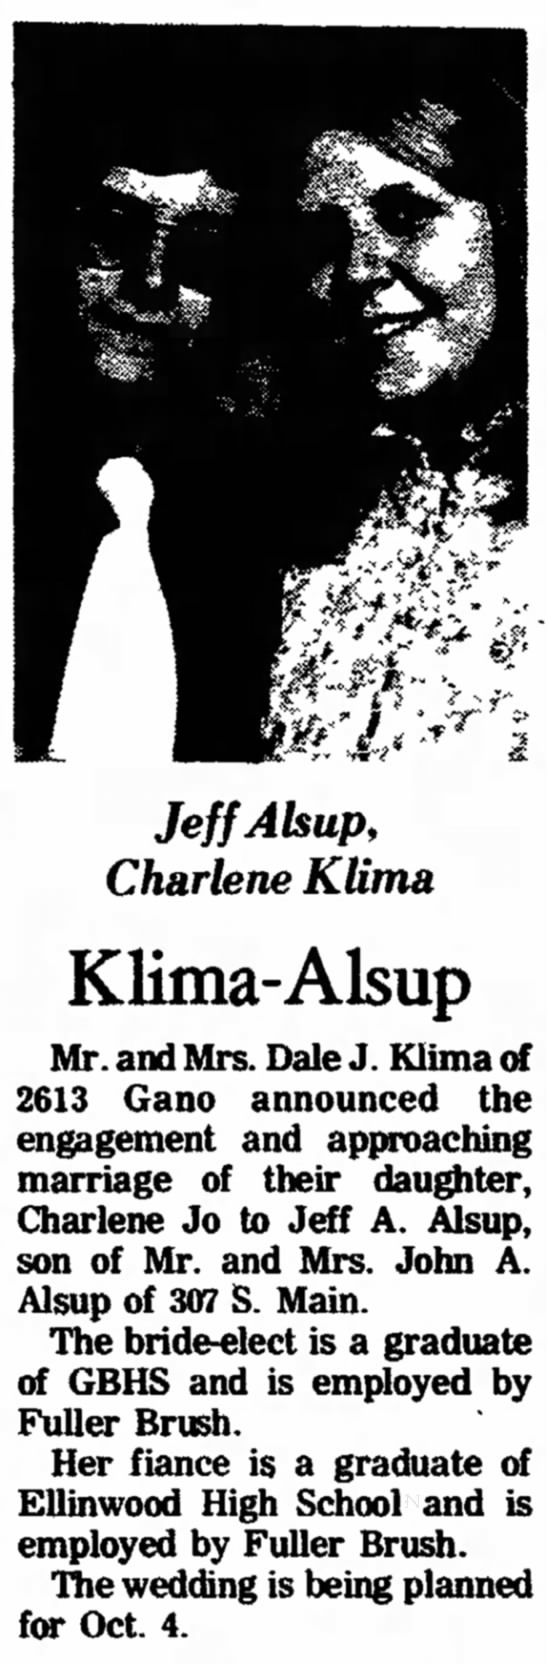 Jeff Alsup and Charlene Jo Klima Engaement -